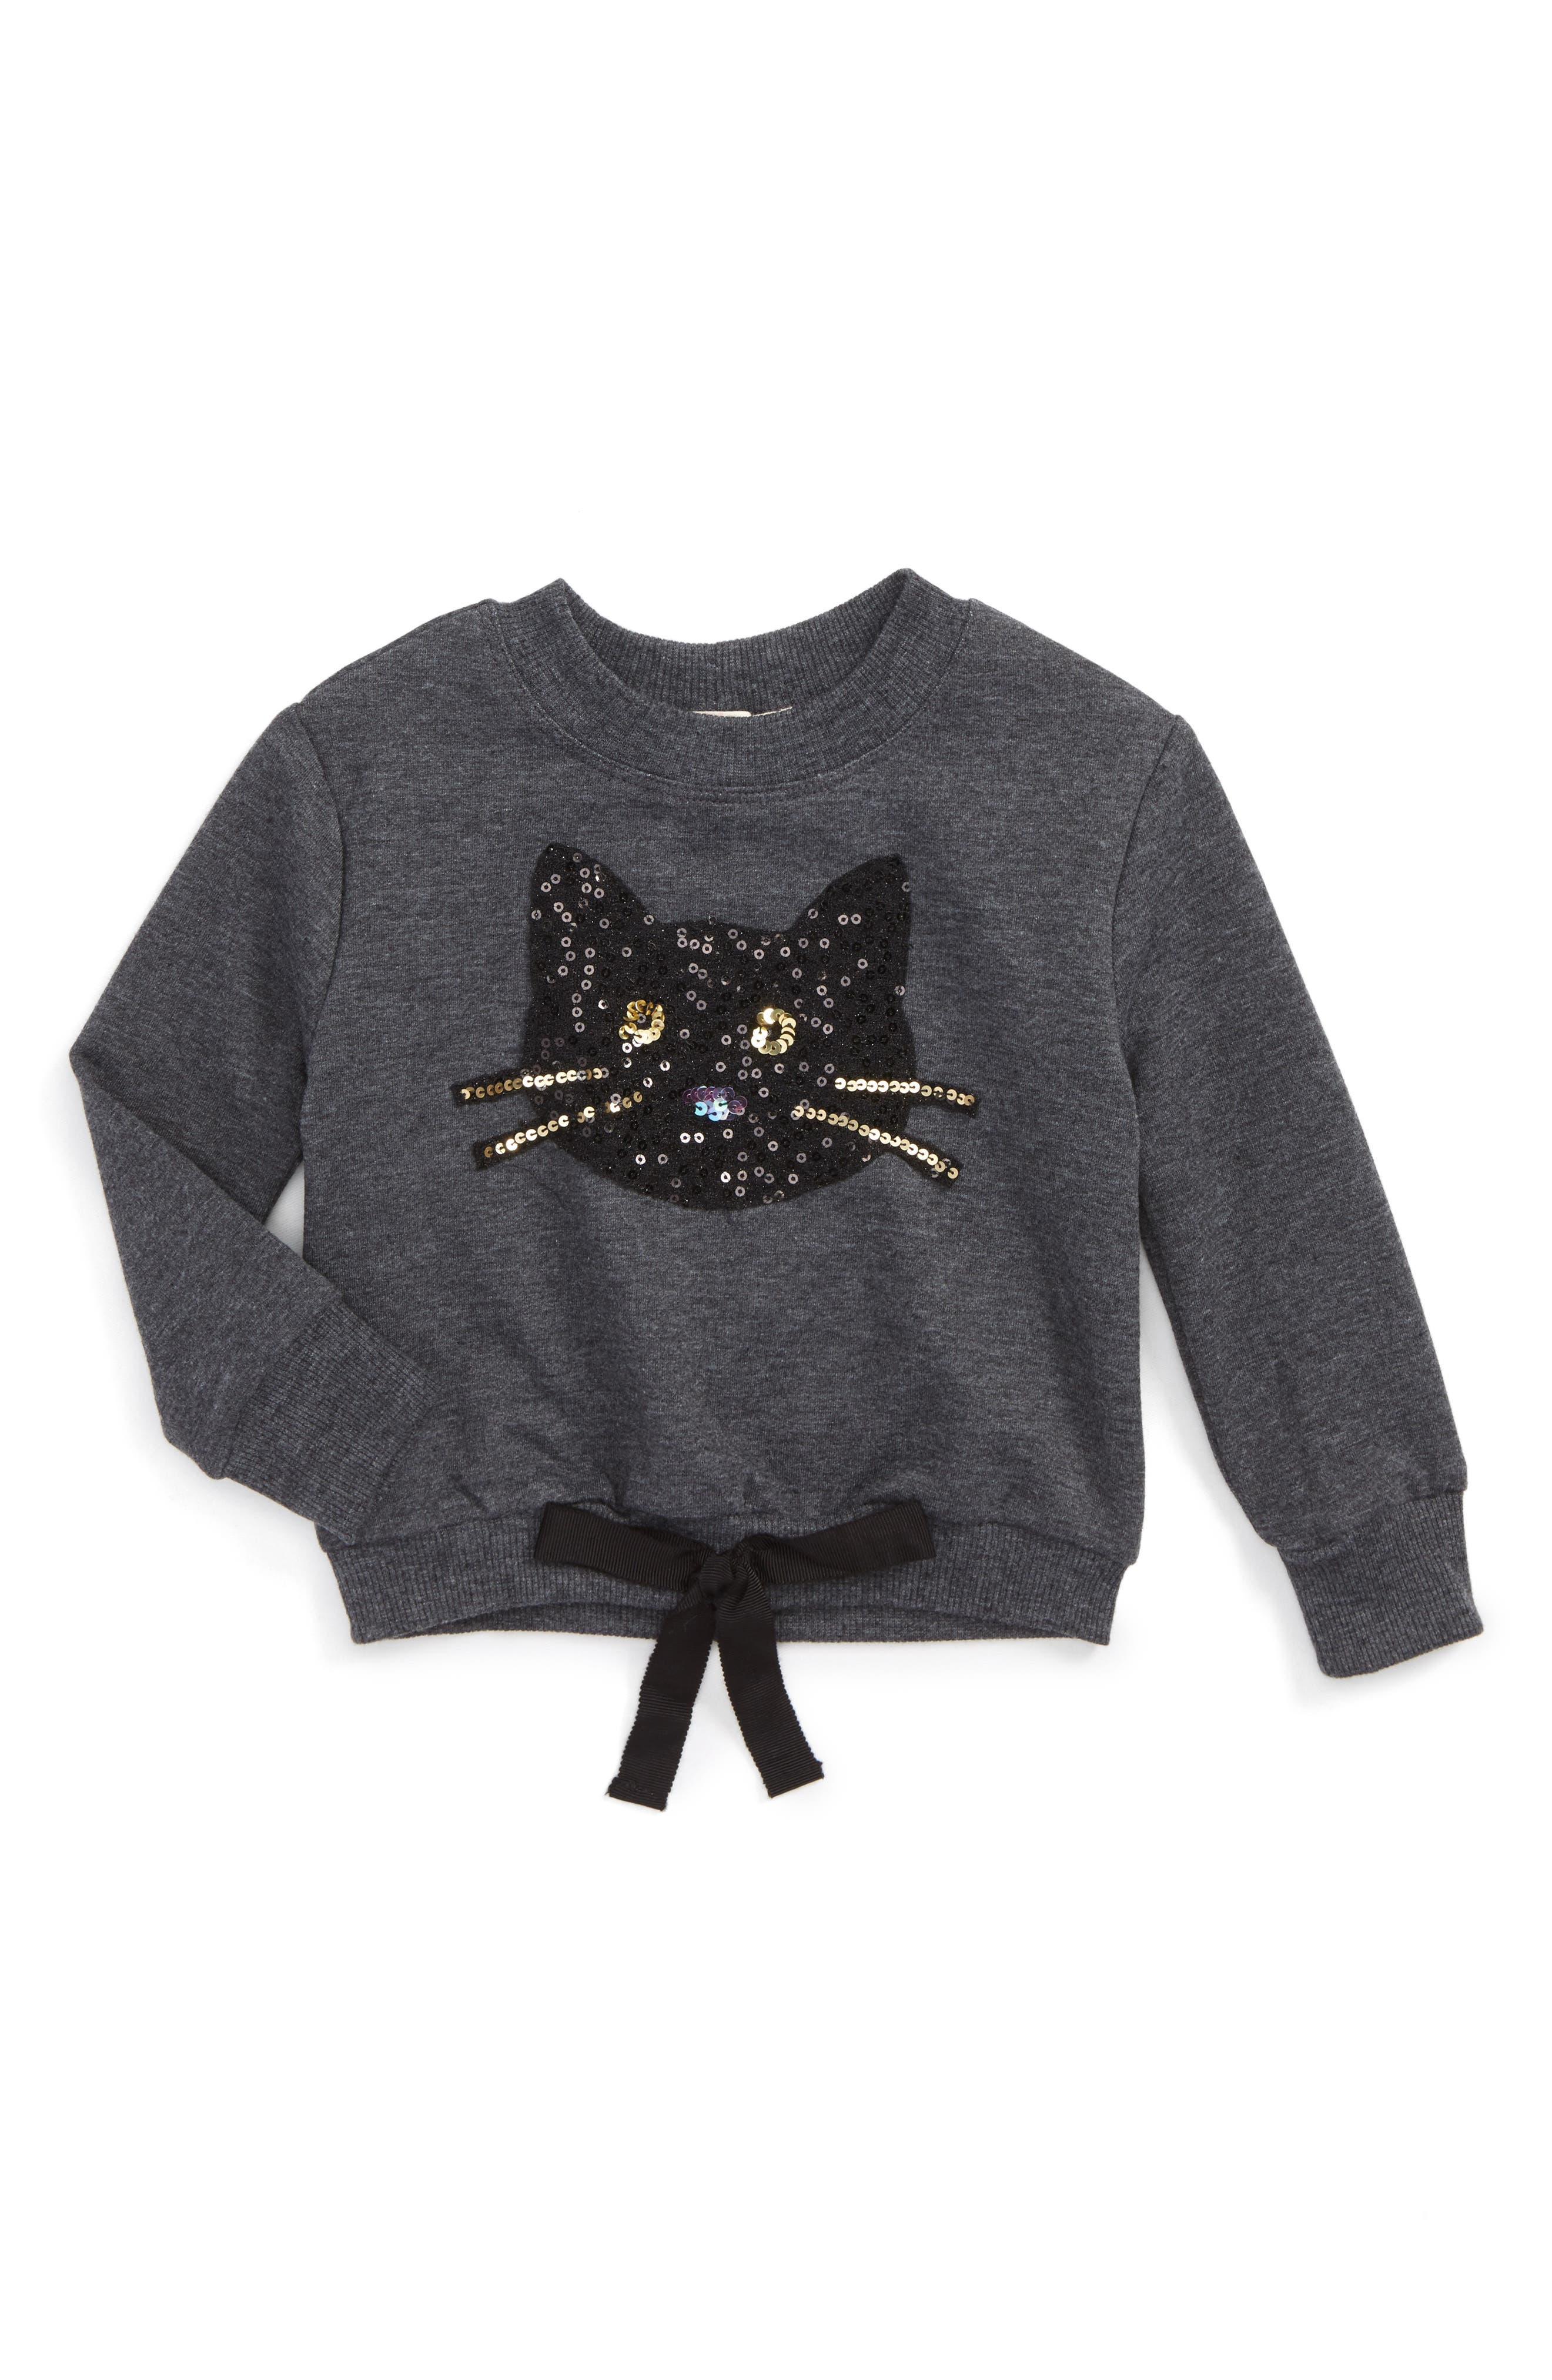 Sequin Kitty Sweatshirt,                         Main,                         color, Charcoal